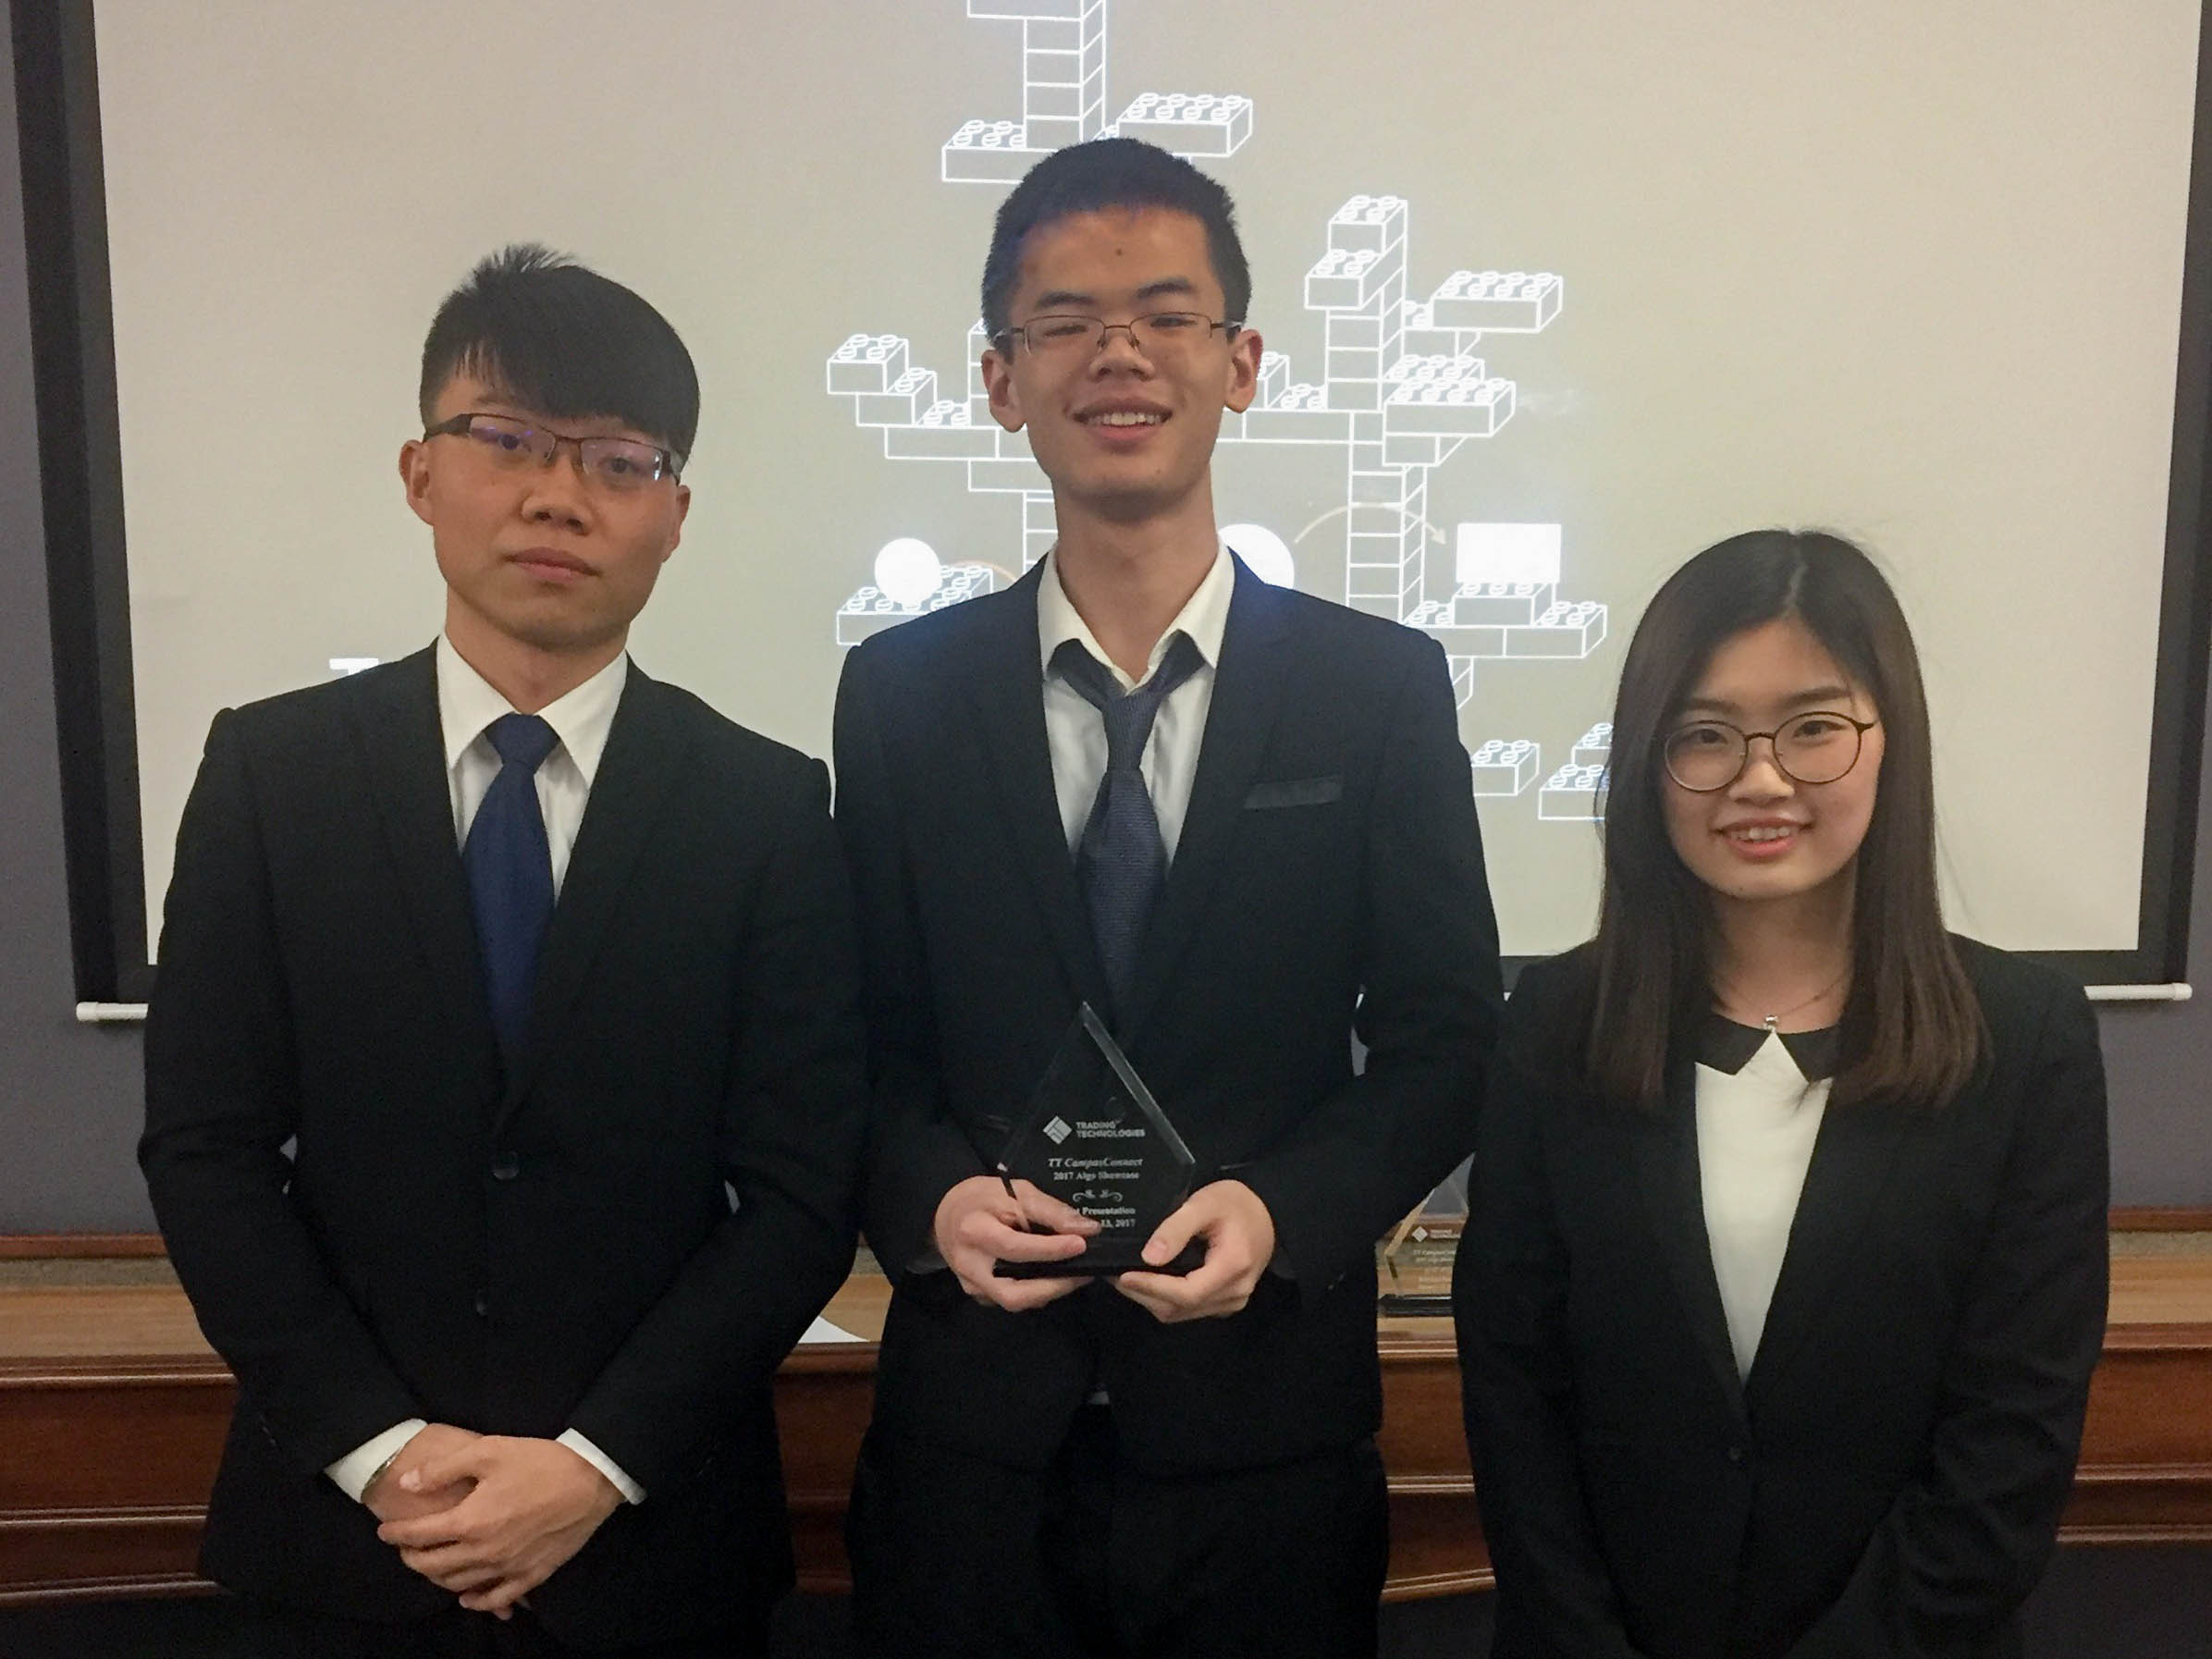 Five CWRU graduate students won the Best Presentation Award at the 2017 Trading Technologies Algo Showcase Competition. The team worked together to design a trading algorithm that can optimize trading strategies. Three of the five members presented their trading algorithm to a panel of judges from leading Chicago trading firms.